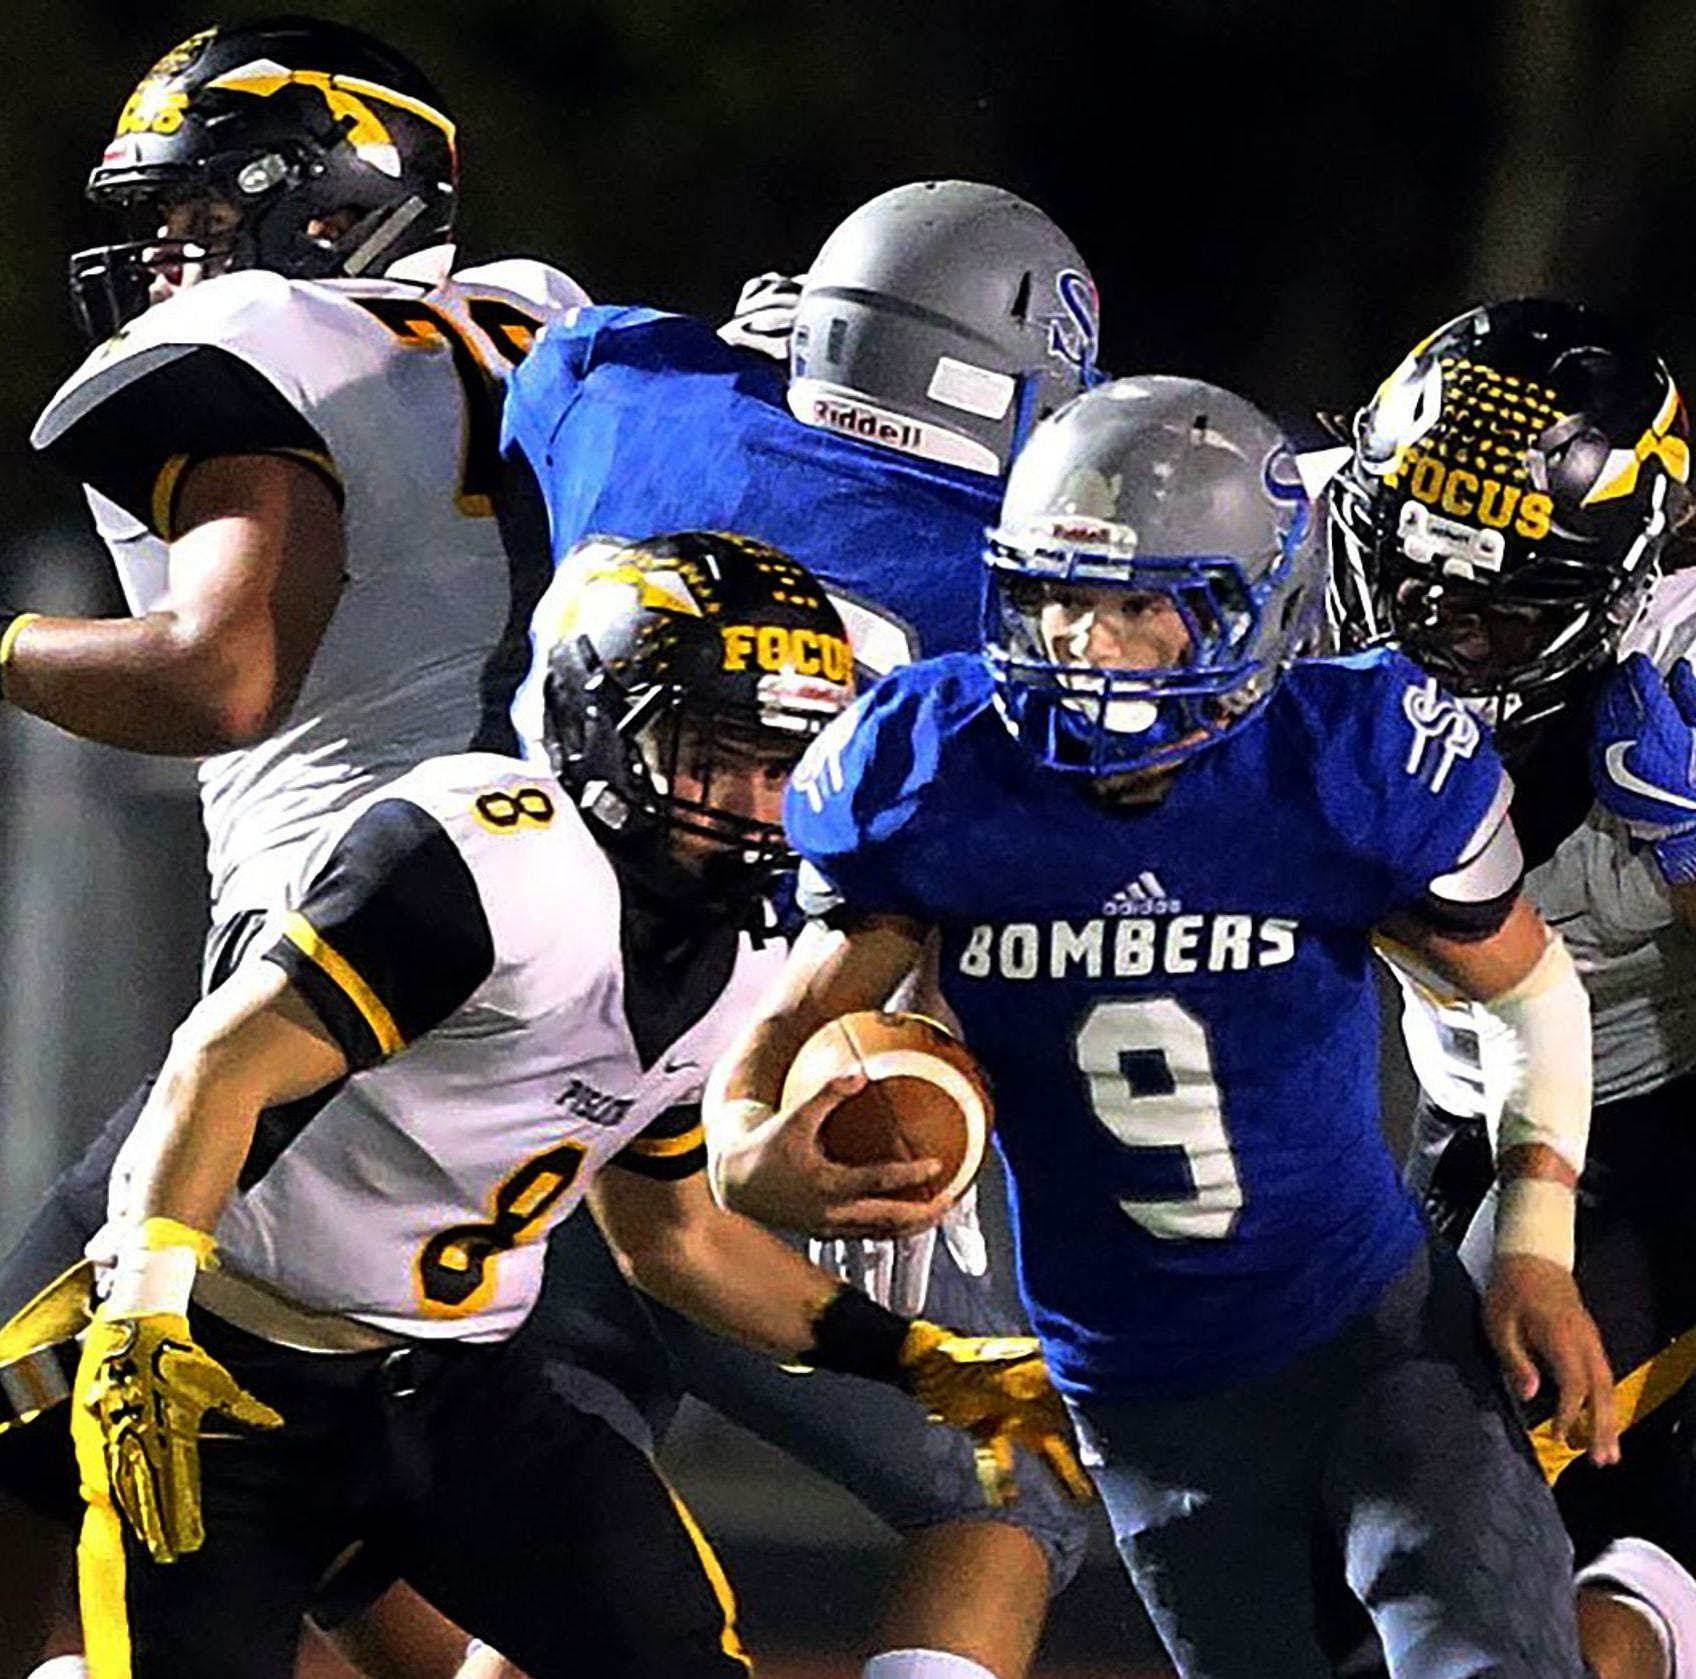 The Piscataway and Sayreville football teams will battle on Friday night